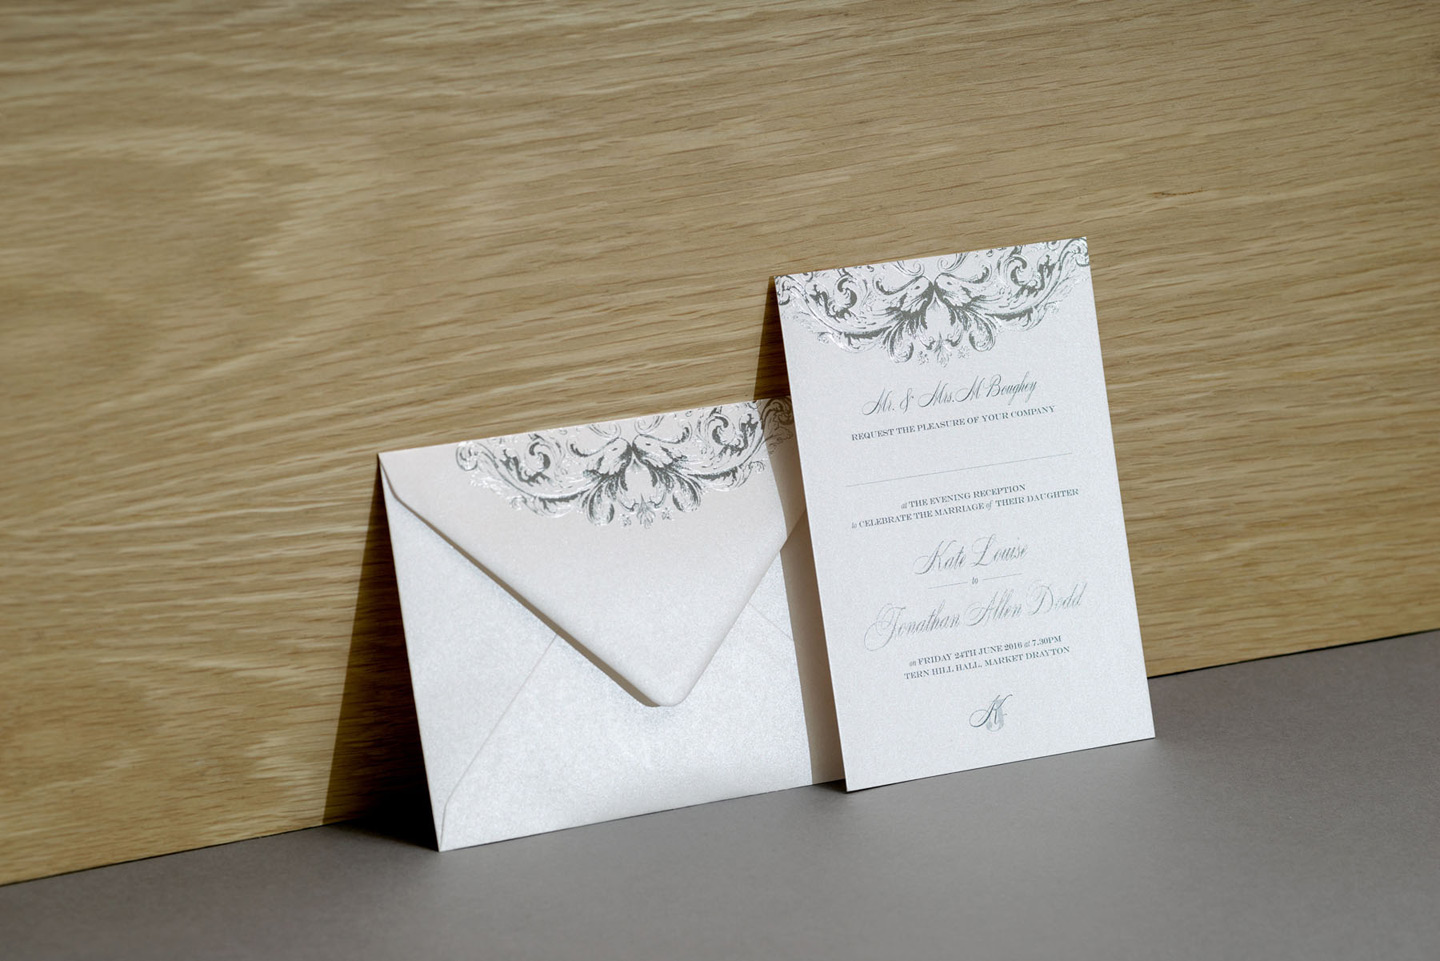 Stuffing Wedding Invitations With Inner Envelope: 4 Ideas To Make Your Wedding Invitation Envelopes Extra